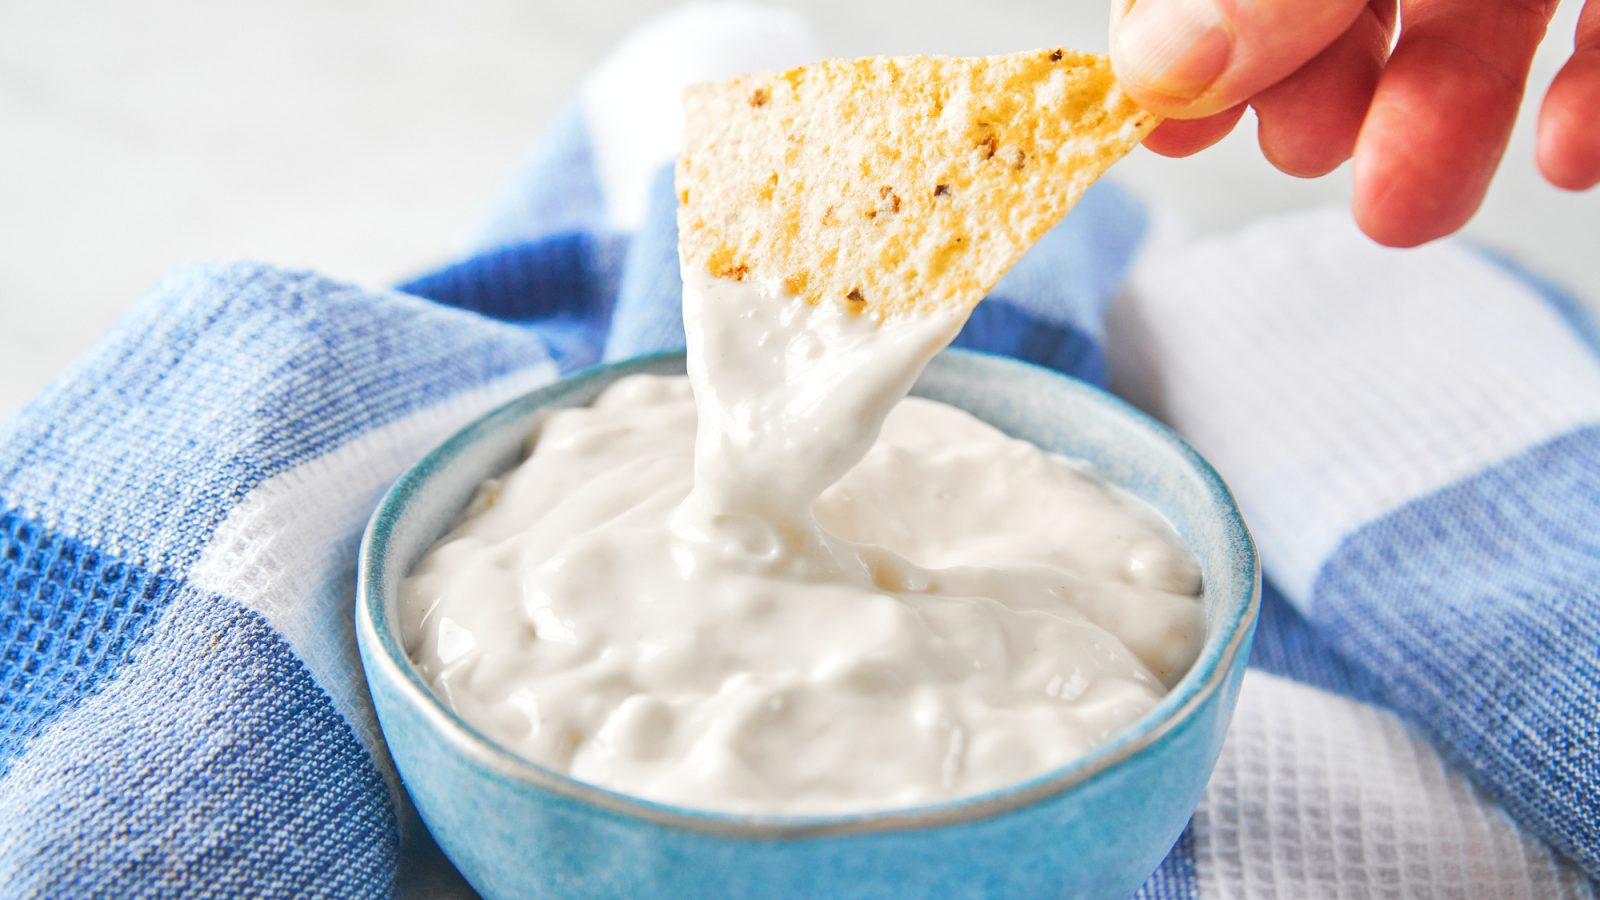 chip scooping out vegan sour cream from a bowl